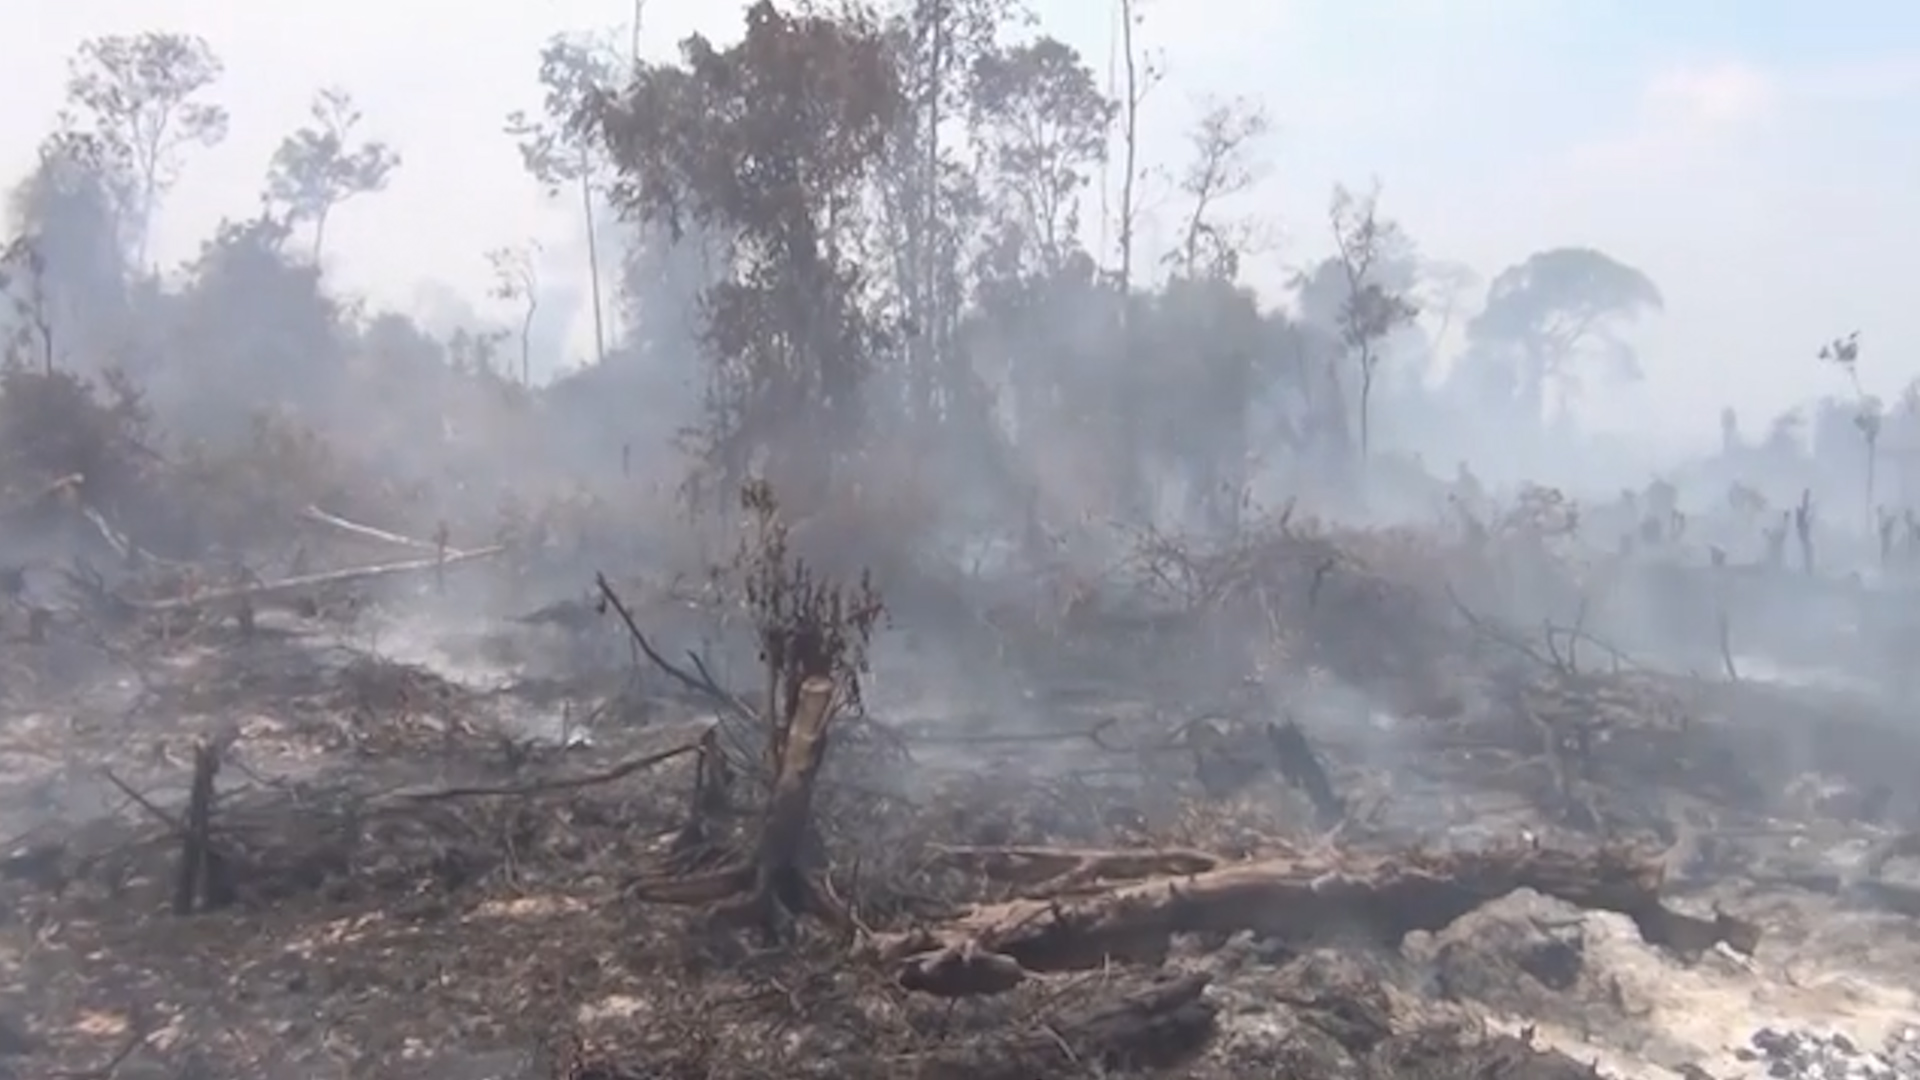 Wildfires in Indonesia have ravaged 800,000 acres. Palm oil farmers are mostly to blame.